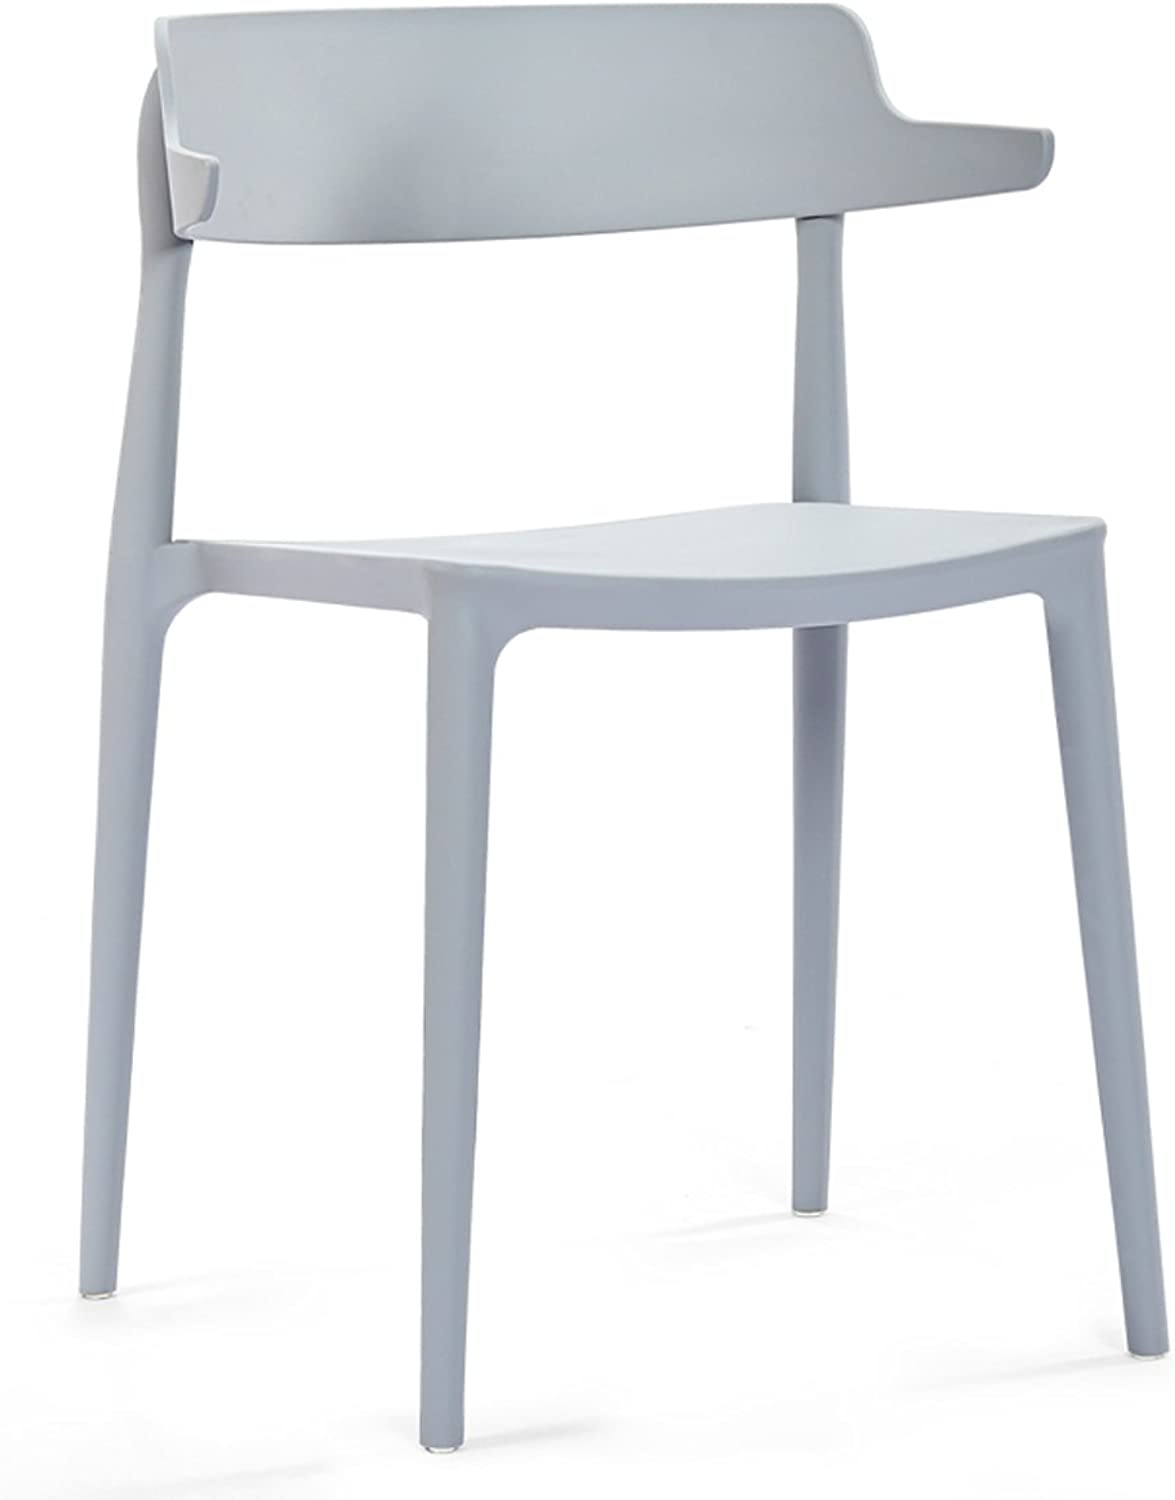 HZB European Modern Simple Home Plastic Chairs, Leisure Backrest Chairs, Creative Chairs, Fashionable Chair Stools